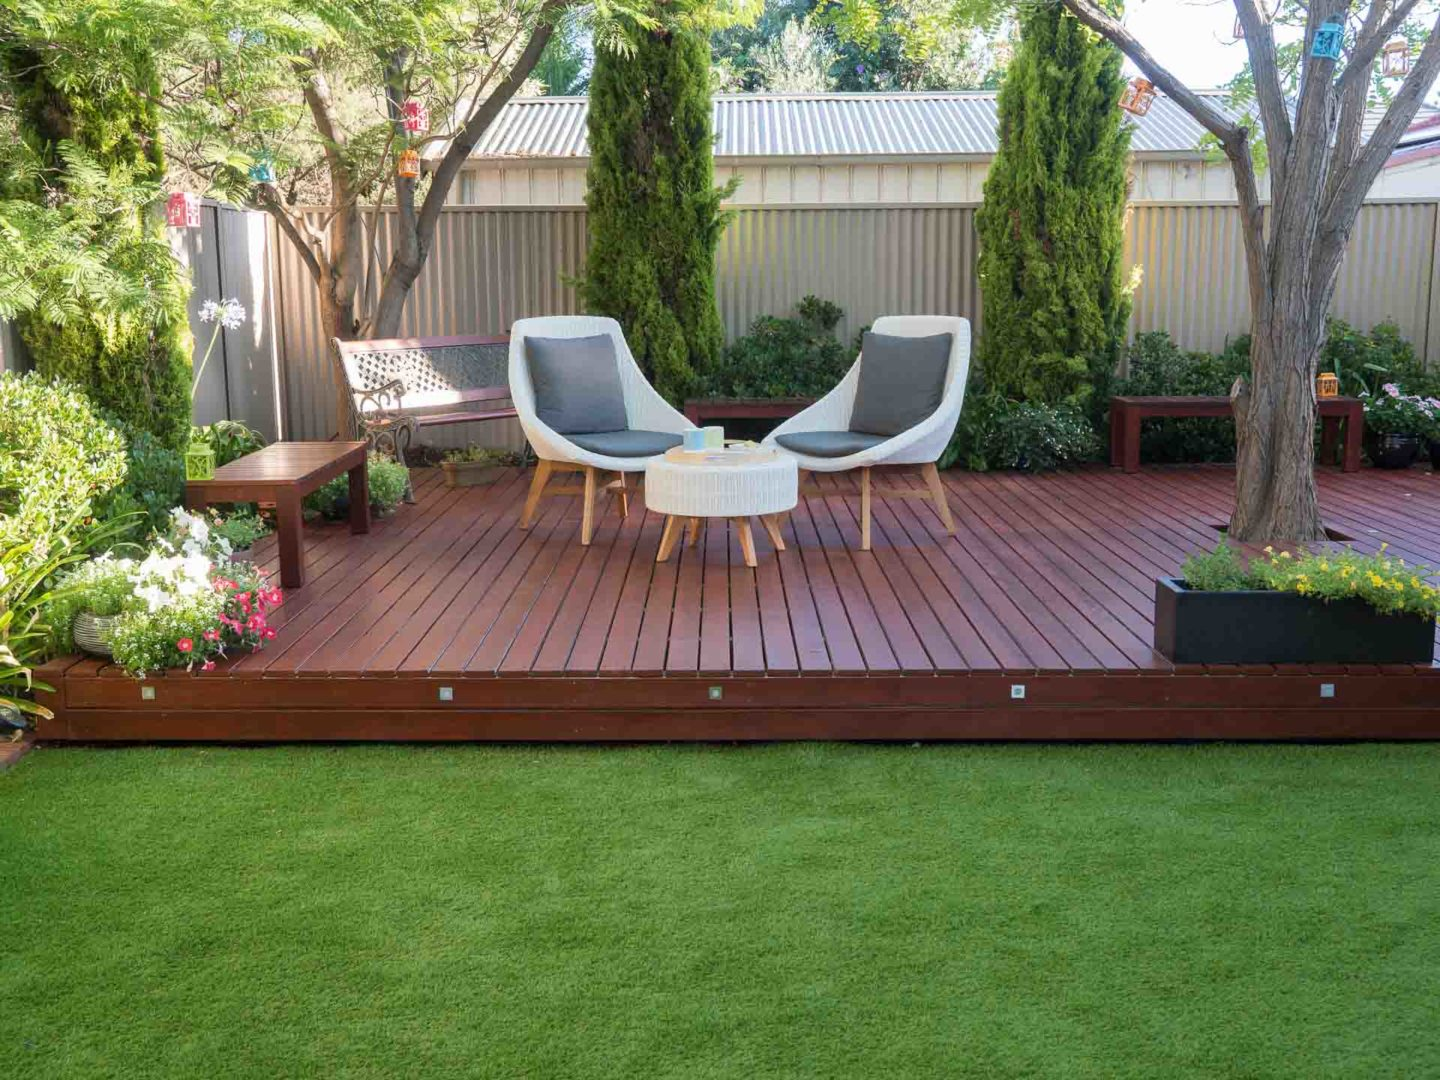 Artificial Grass Lawns - A Good Choice - Why choose Artificial Grass, Australian Outdoor Living.